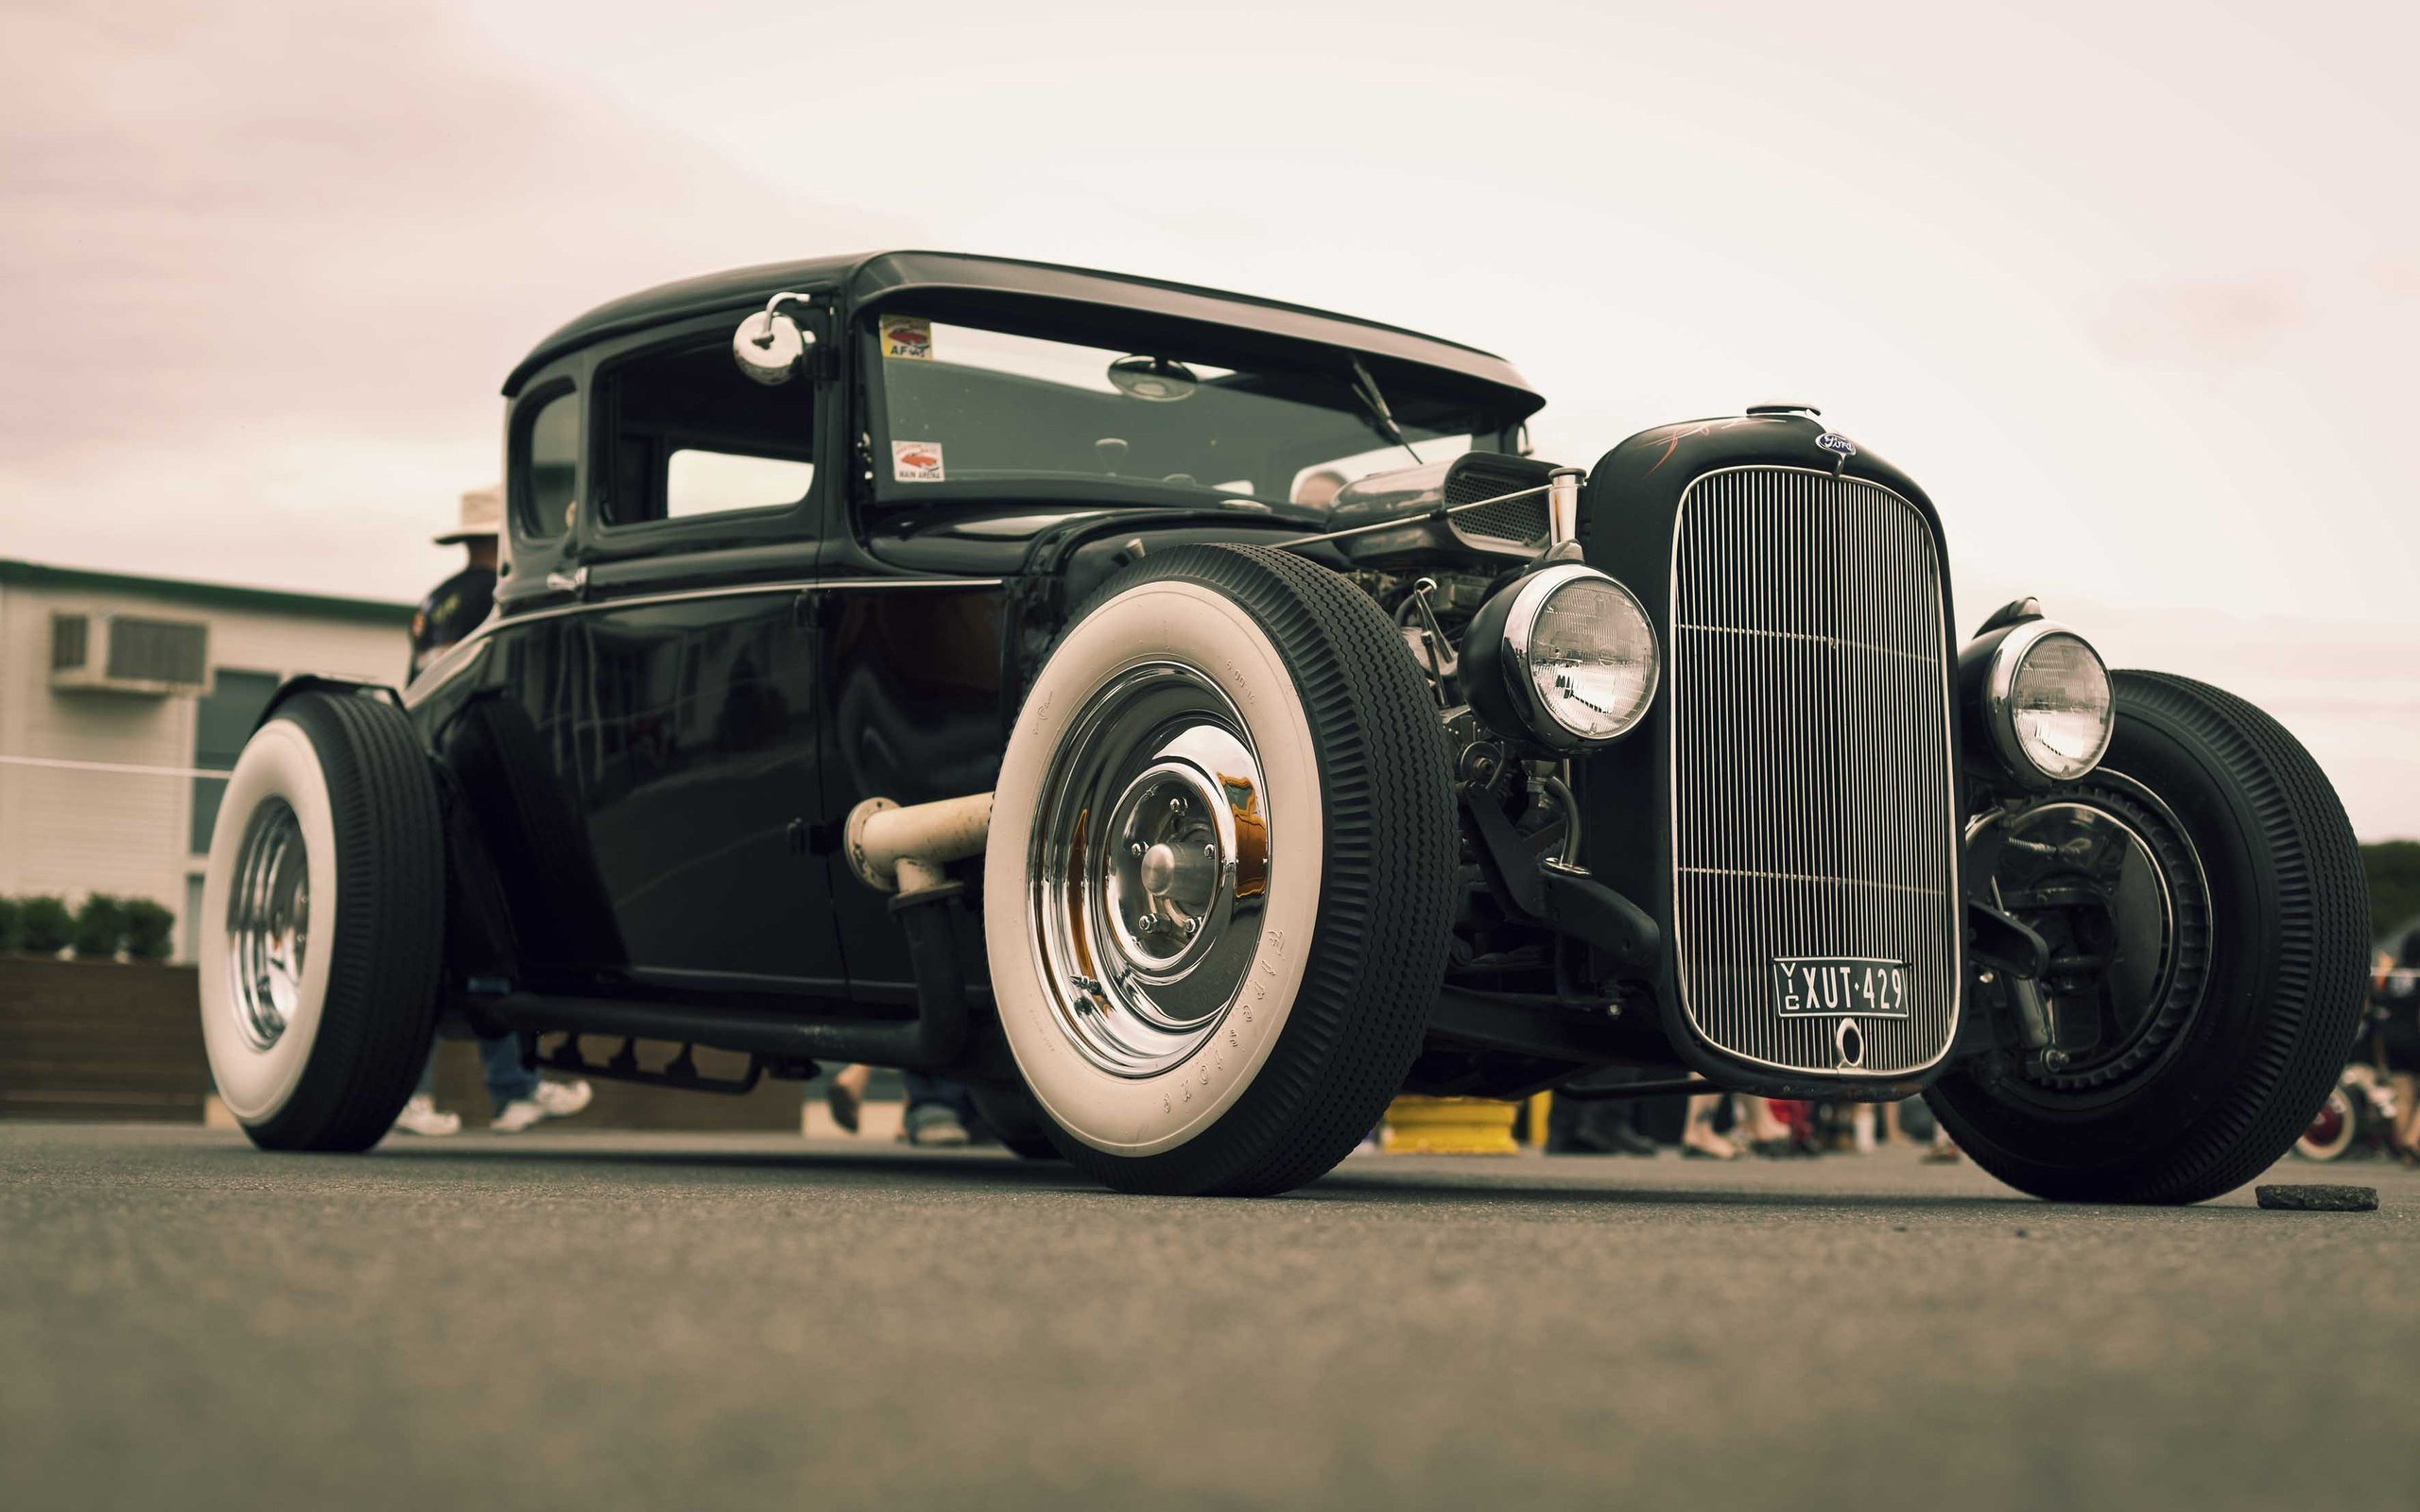 Hot Rod Car HD Desktop Wallpaper 5403 HD Wallpaper 3D Desktop 2560x1600